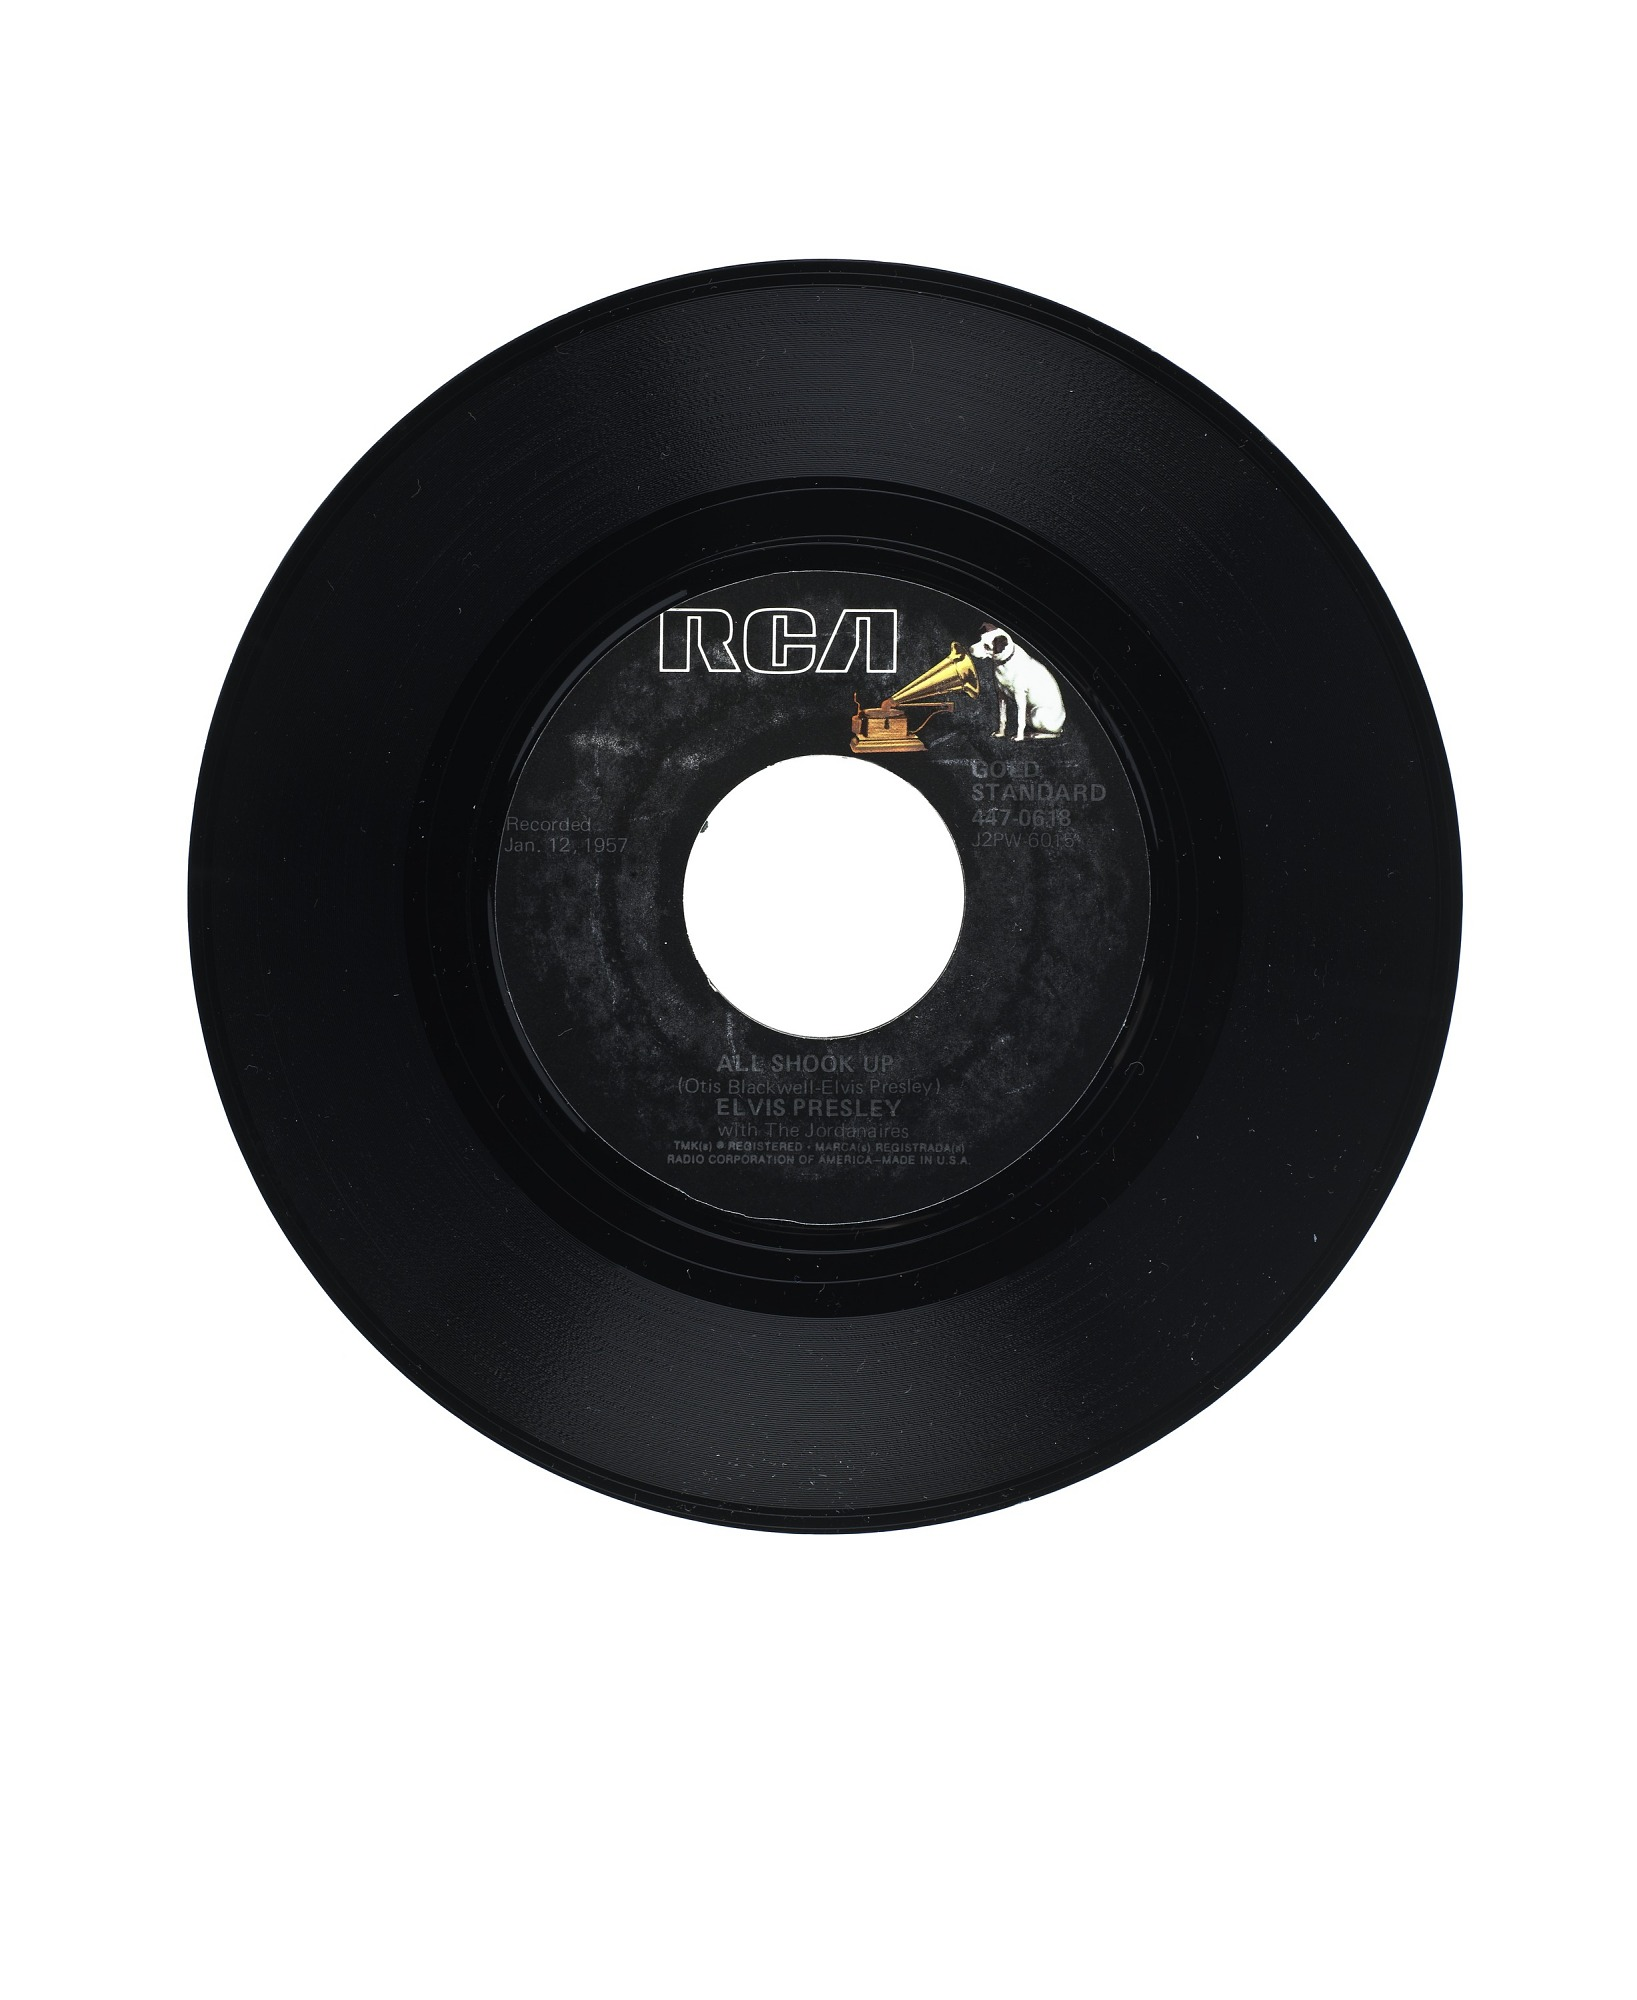 Image for All Shook Up; That's When Your Heartaches Begin Vinyl Single